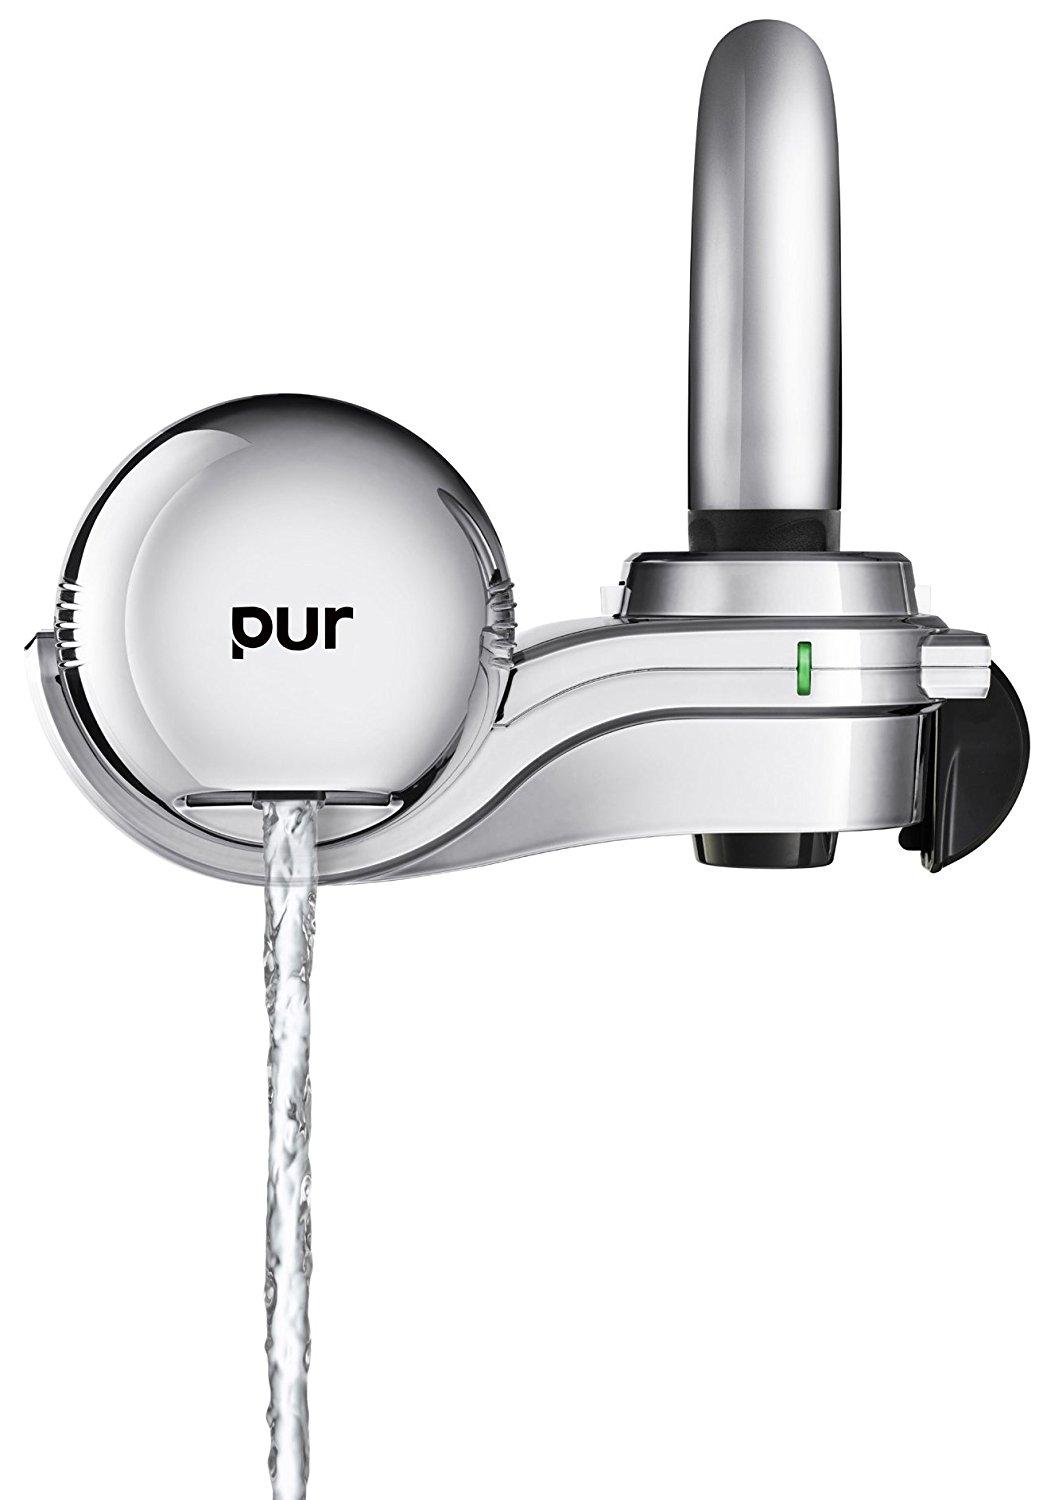 PUR 3-Stage Horizontal Water Filtration Faucet Mount Chrome